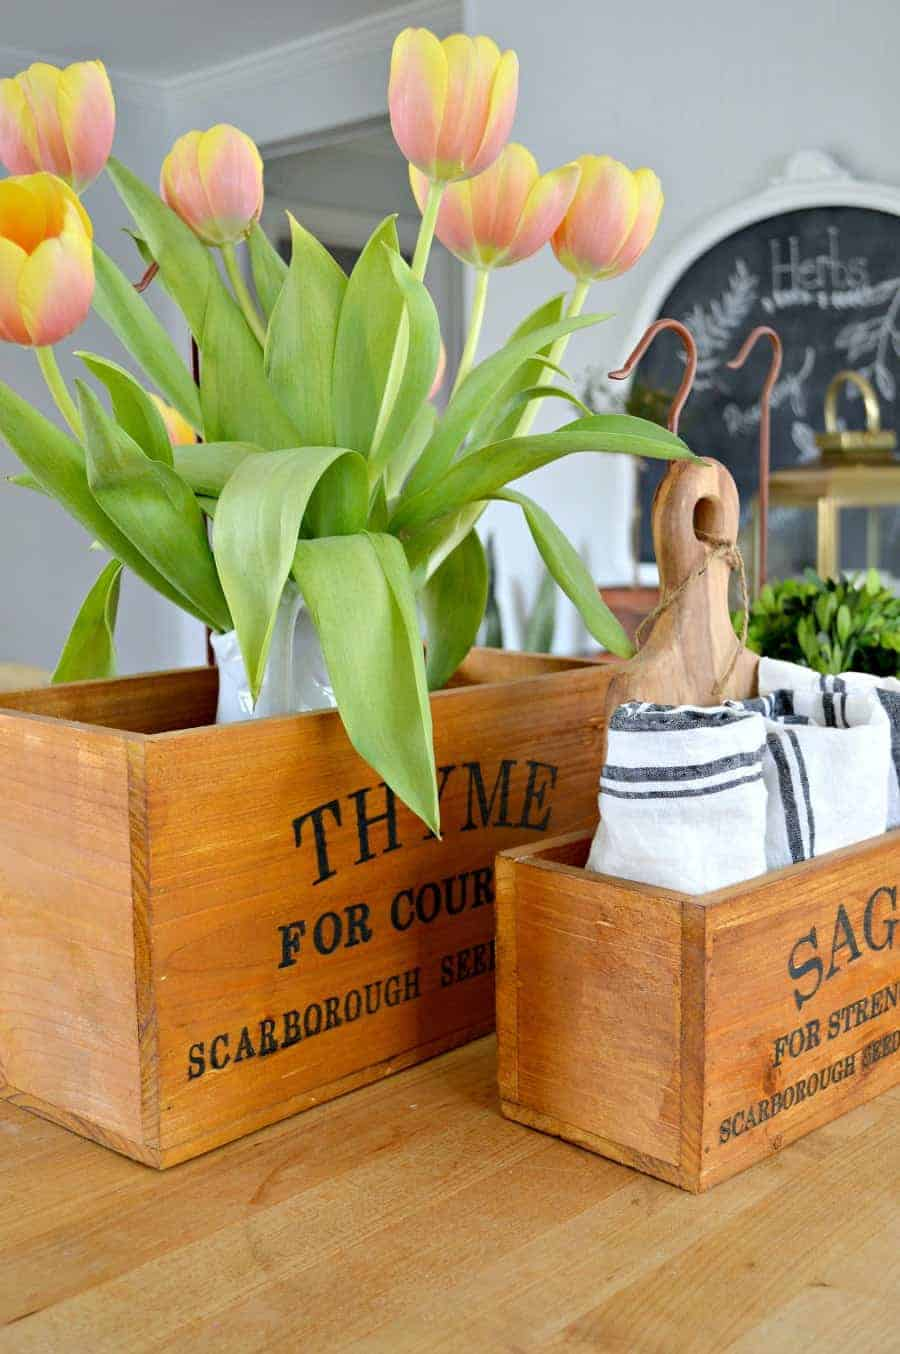 Thyme and Sage wooden herb boxes sitting on a butcher block island with tulips and napkins in them.